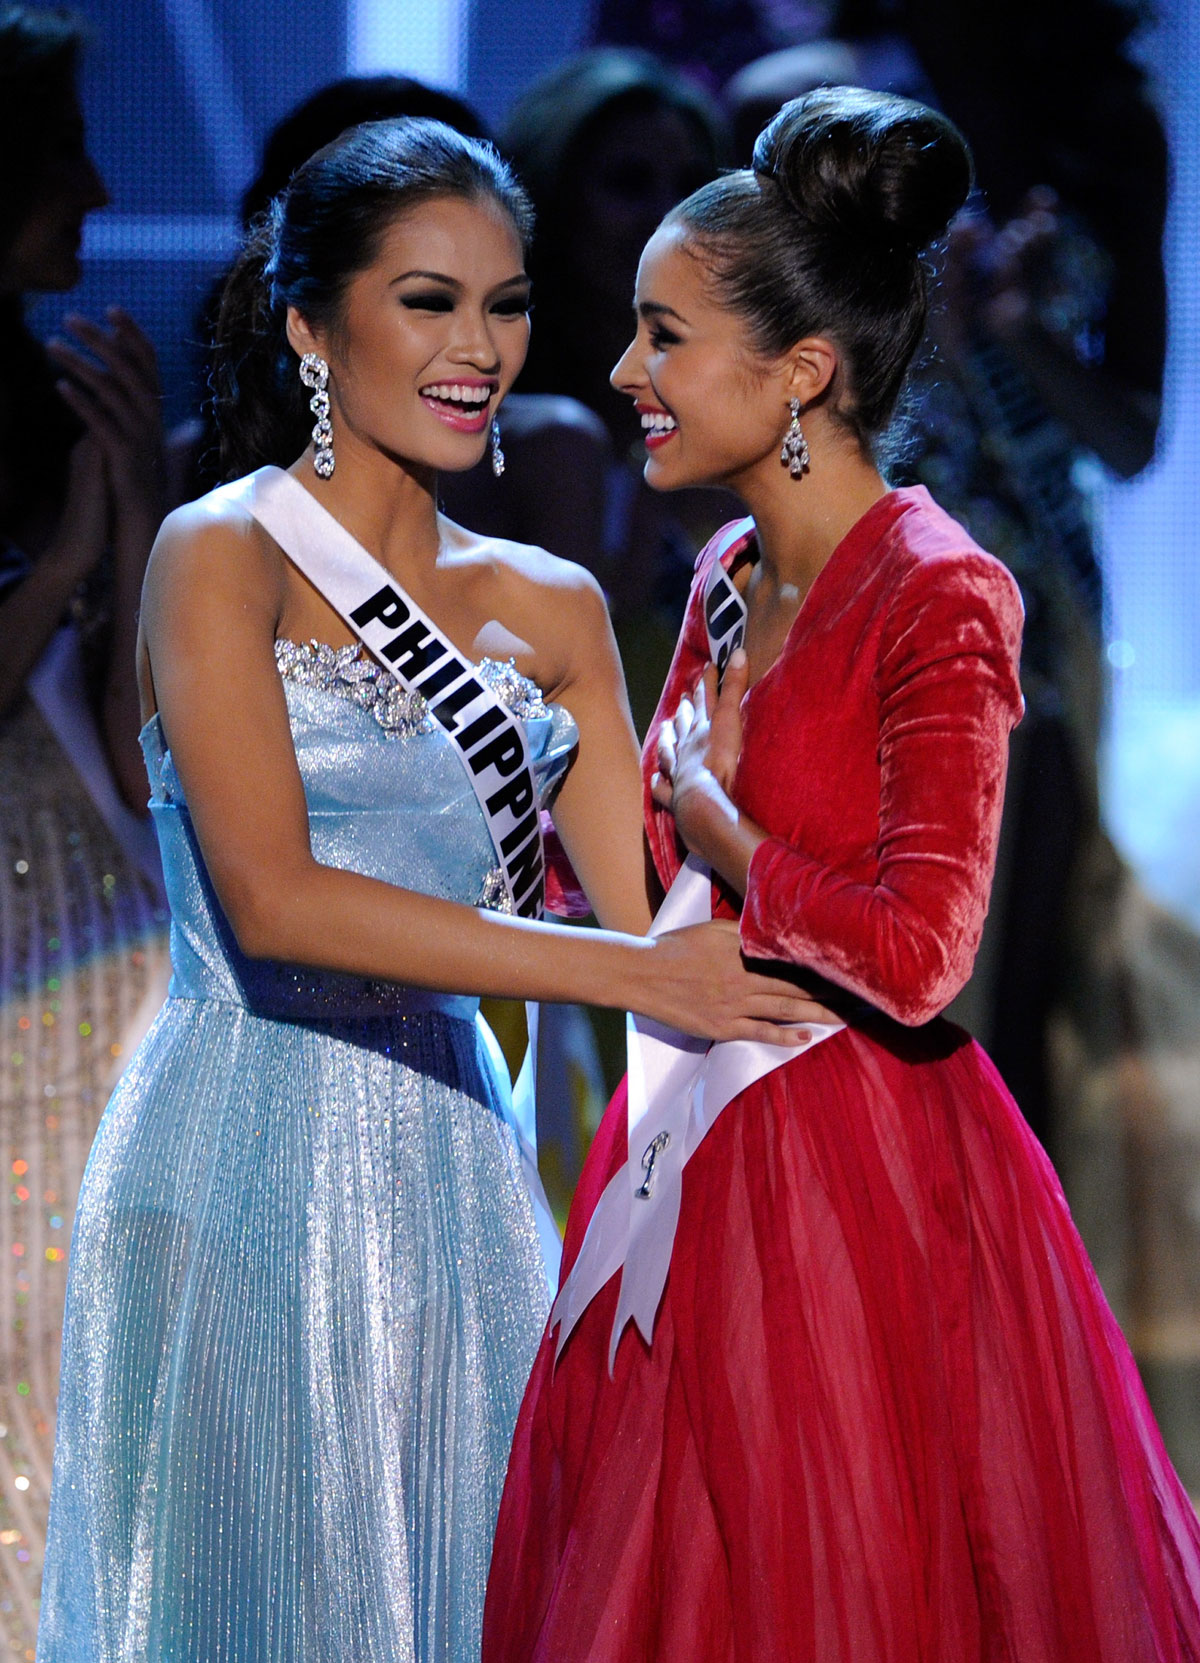 olivia culpo as miss universe at the 2012 miss universe